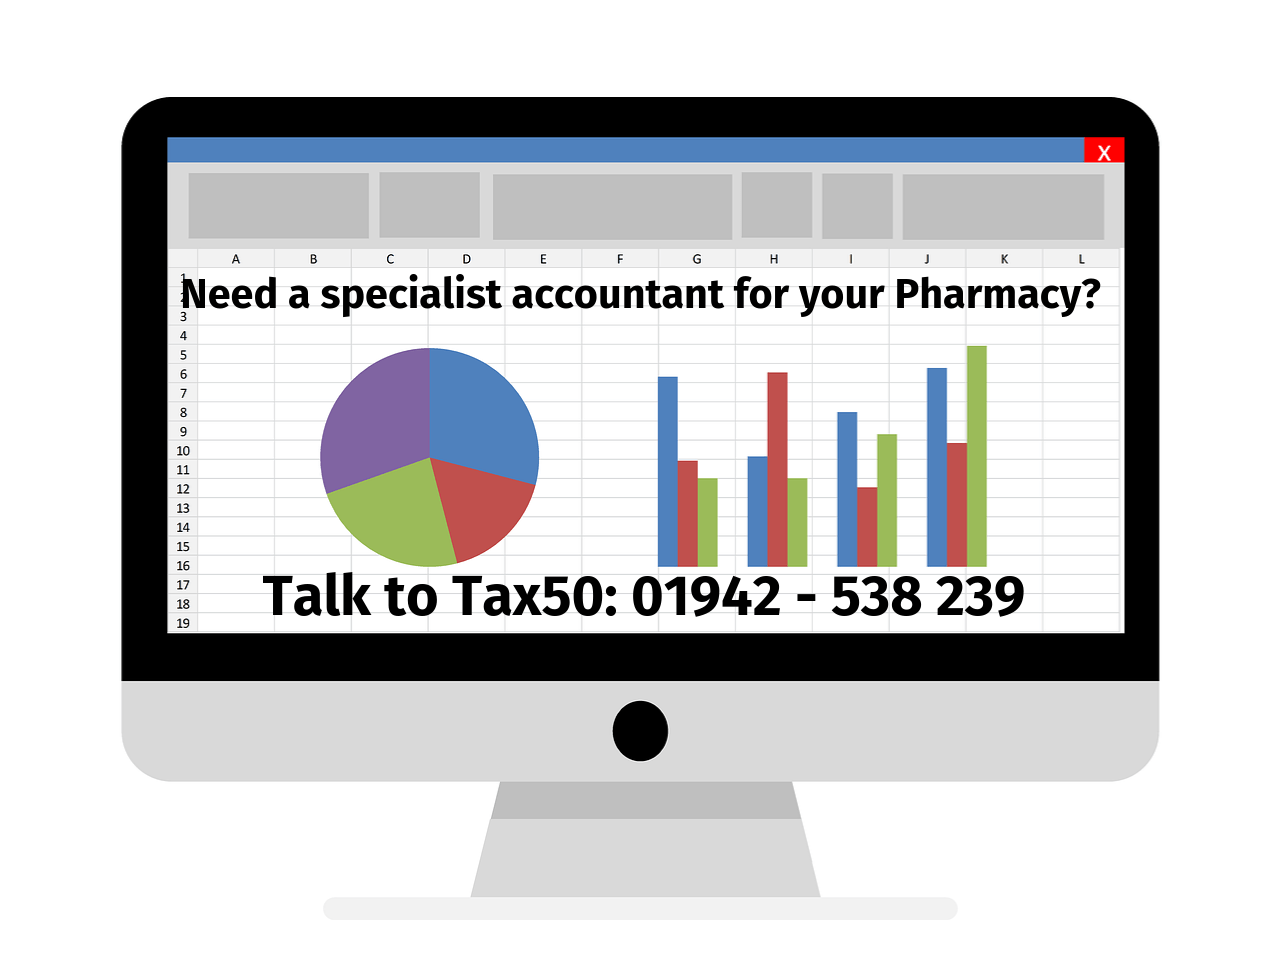 Specialist Accountant for Pharmacy